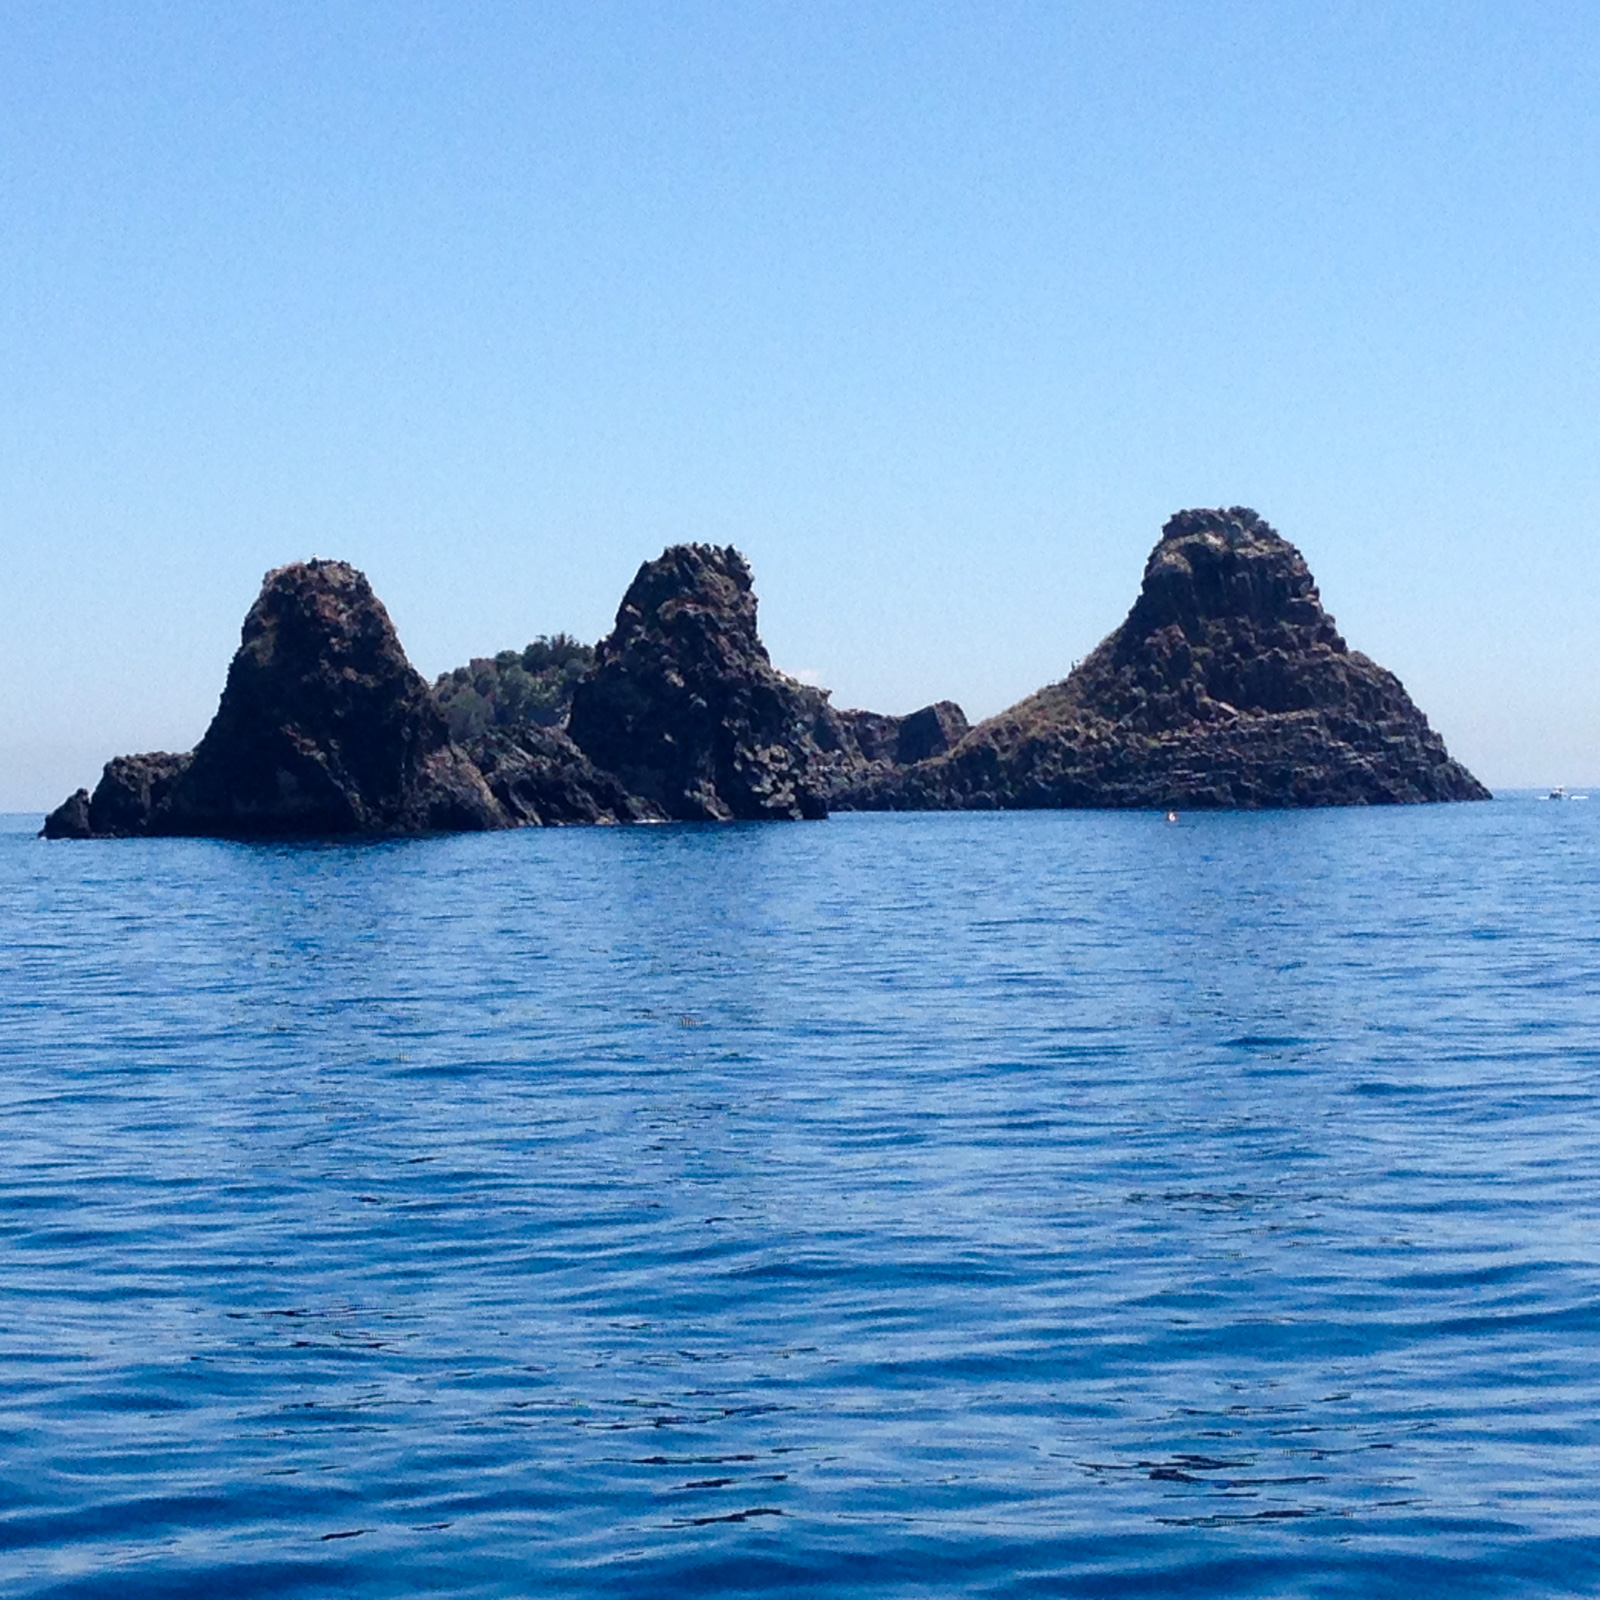 Catania day trip: sailing to Aci Trezza in search of the cyclops